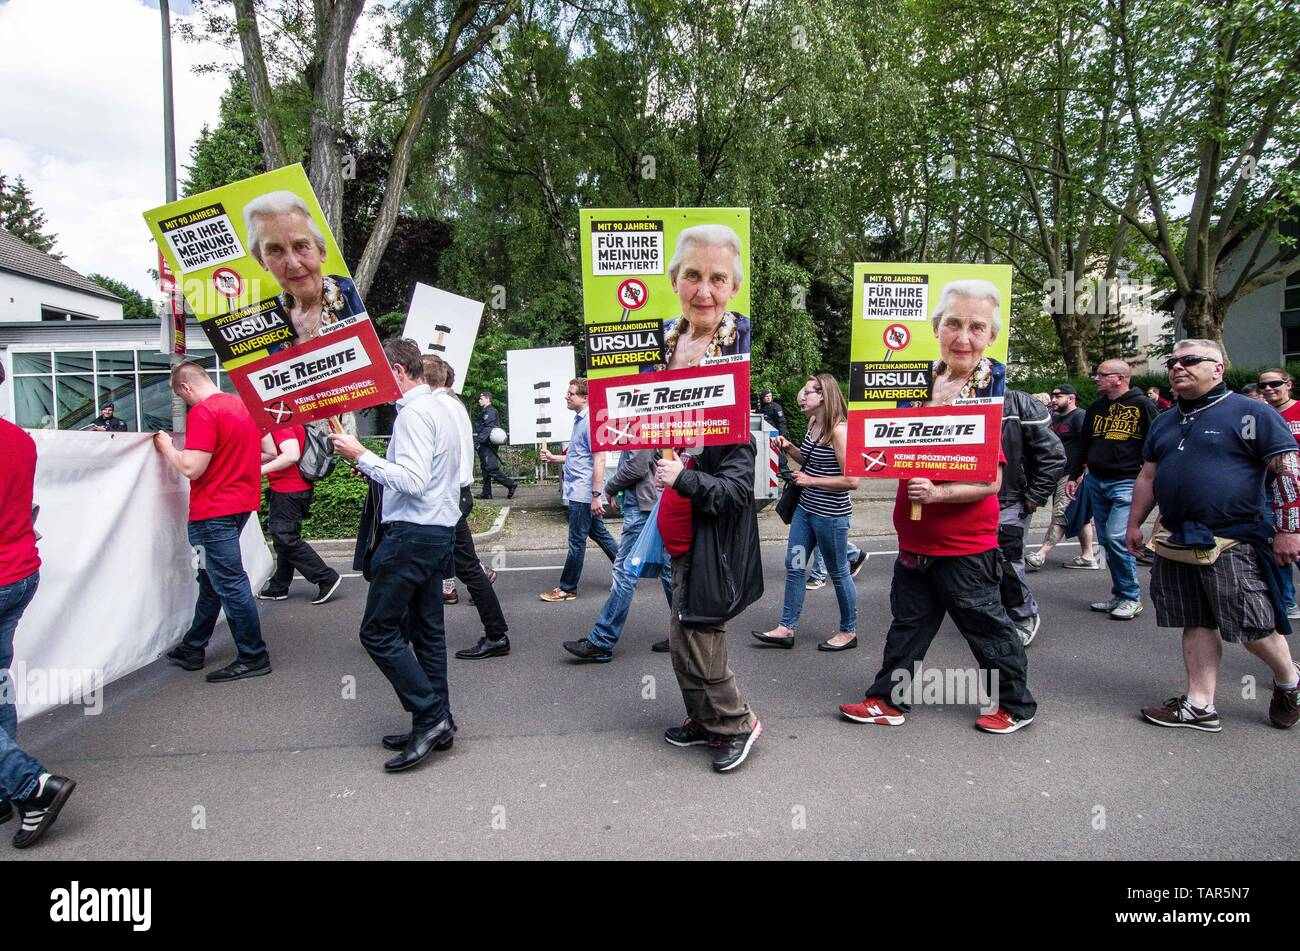 Dortmund, Nordrhein Westfalen, Germany. 25th May, 2019. Neonazis in Dortmund, Germany expressing support for incarcerated Holocaust denier Ursula Haverbeck. Prior to the European Elections, the neonazi party Die Rechte (The Right) organized a rally in the German city of Dortmund to promote their candidate, the incarcerated Holocaust denier Ursula Haverbeck. The demonstration and march were organized by prominent local political figure and neonazi activist Michael Brueck (Michael Brück) who enlisted the help of not only German neonazis, but also assistance from Russian, Bulgarian, Hungarian, Stock Photo